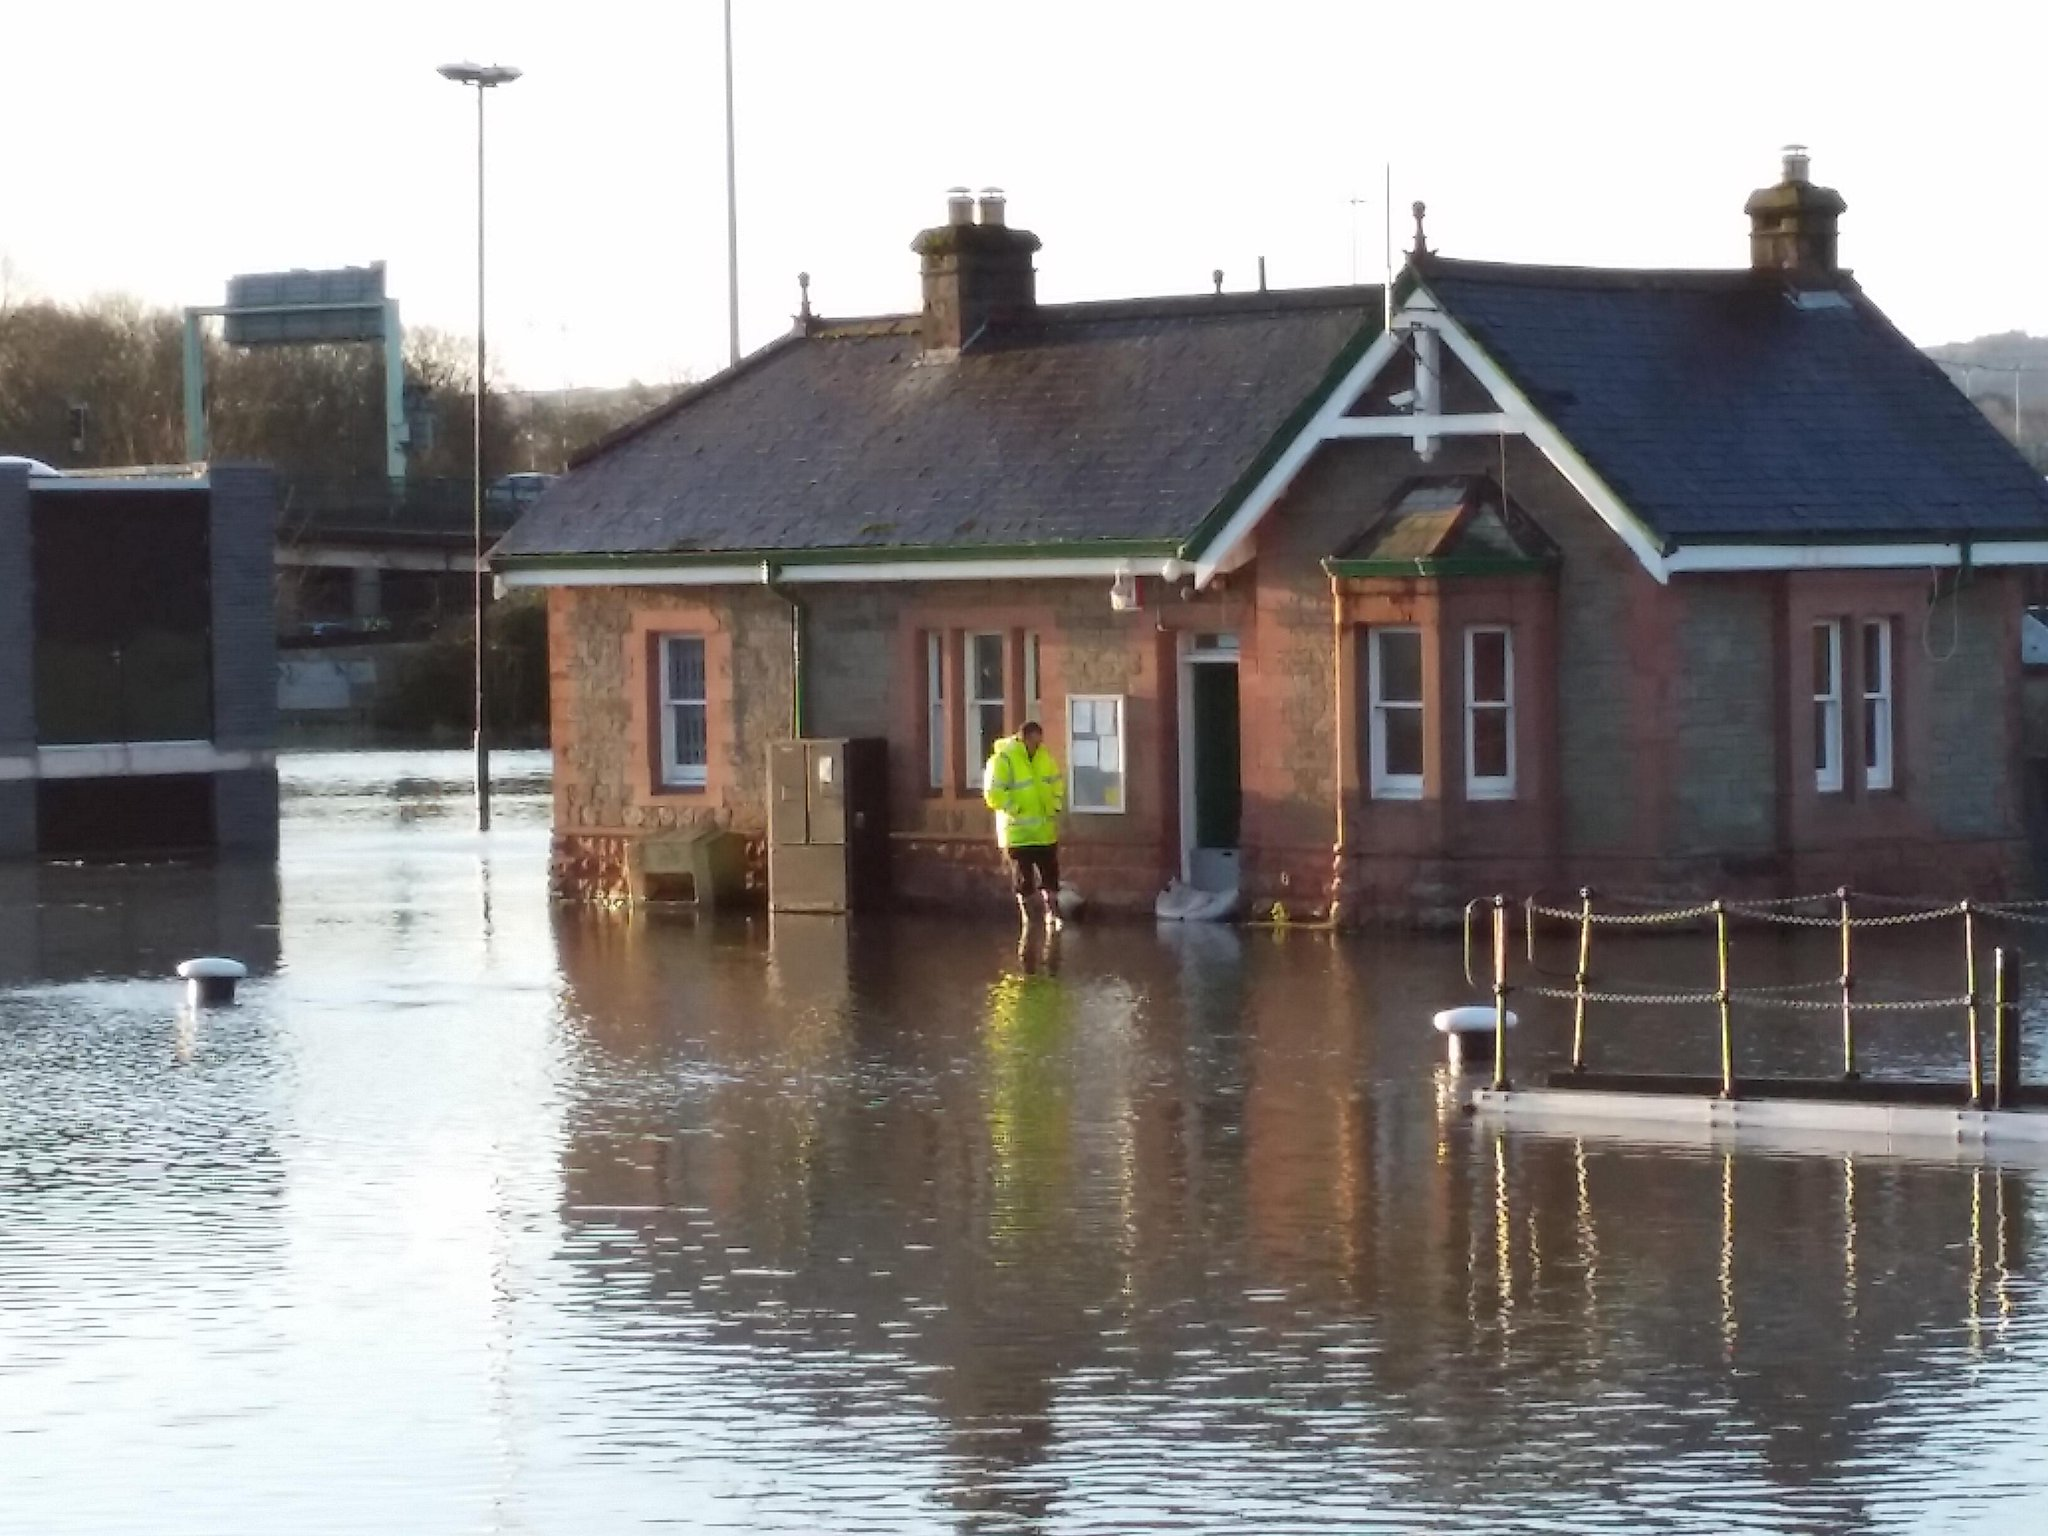 Even lock keeper's cottage under Swing Bridge in trouble #riveravonflooded x http://t.co/RGtWuRW6vk